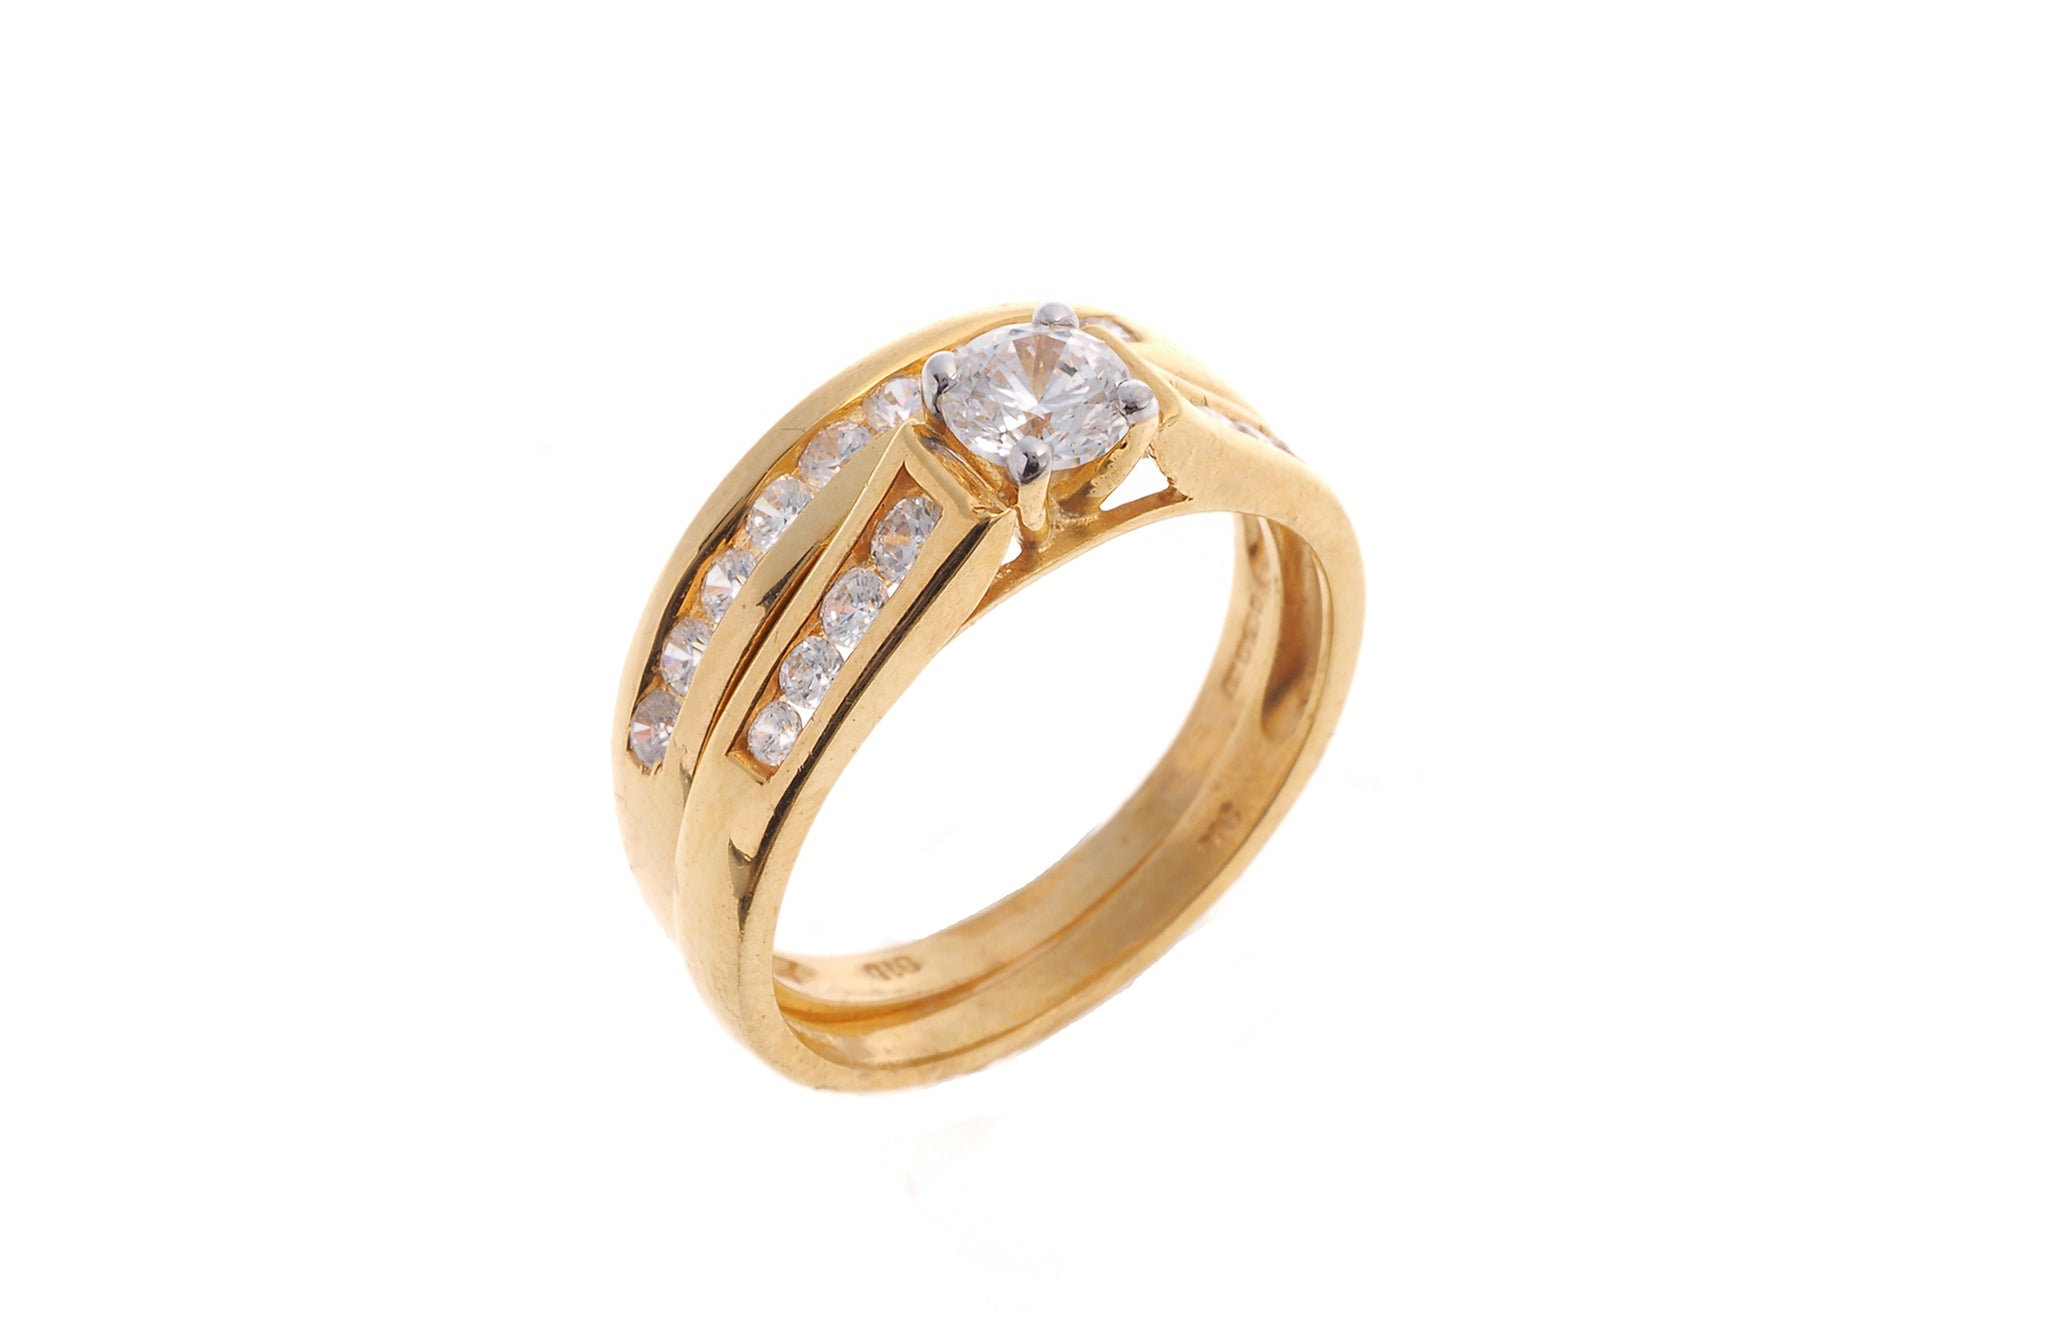 22ct Gold Cubic Zirconia Engagement Ring and Wedding Band Suite LR6487